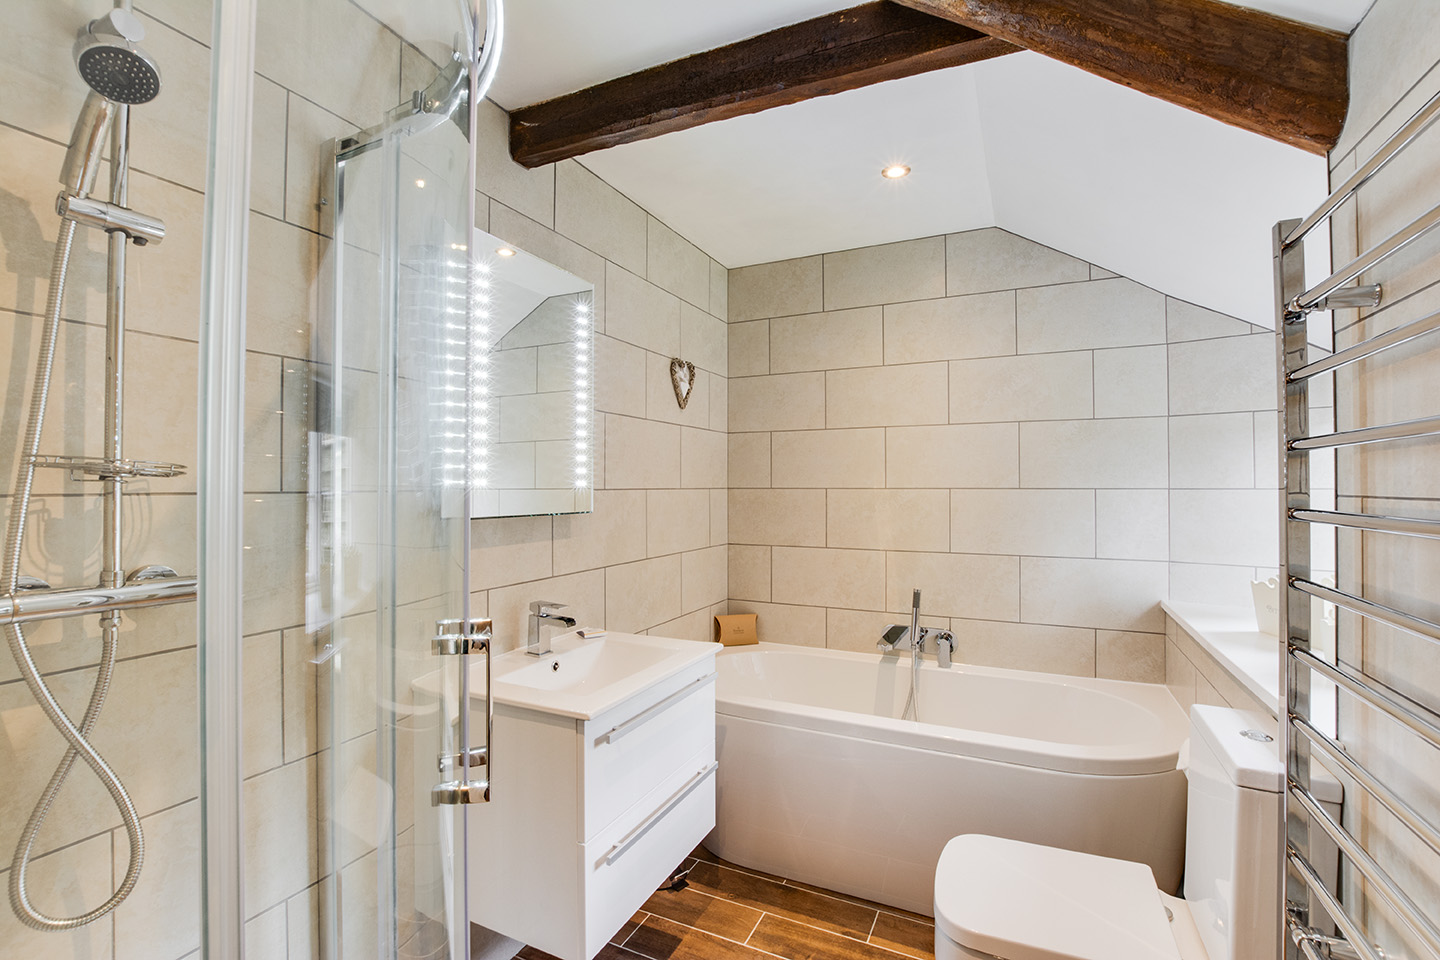 The bathroom of Snappers luxury self catering converted barn holiday cottage at Penrose Burden in North Cornwall 01.jpg